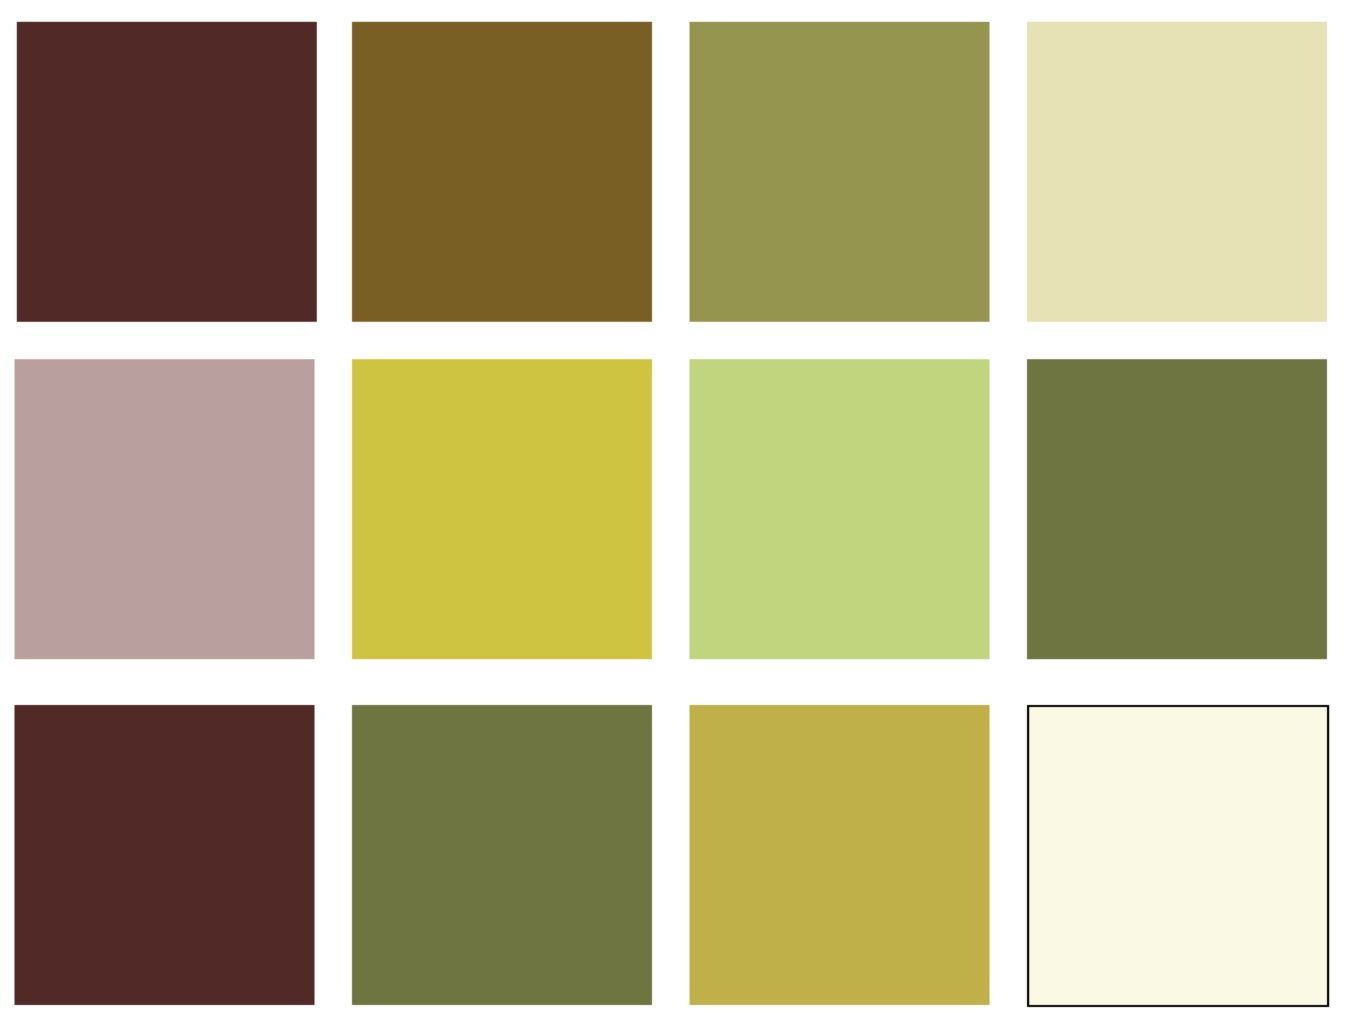 colors that match - Ideal.vistalist.co